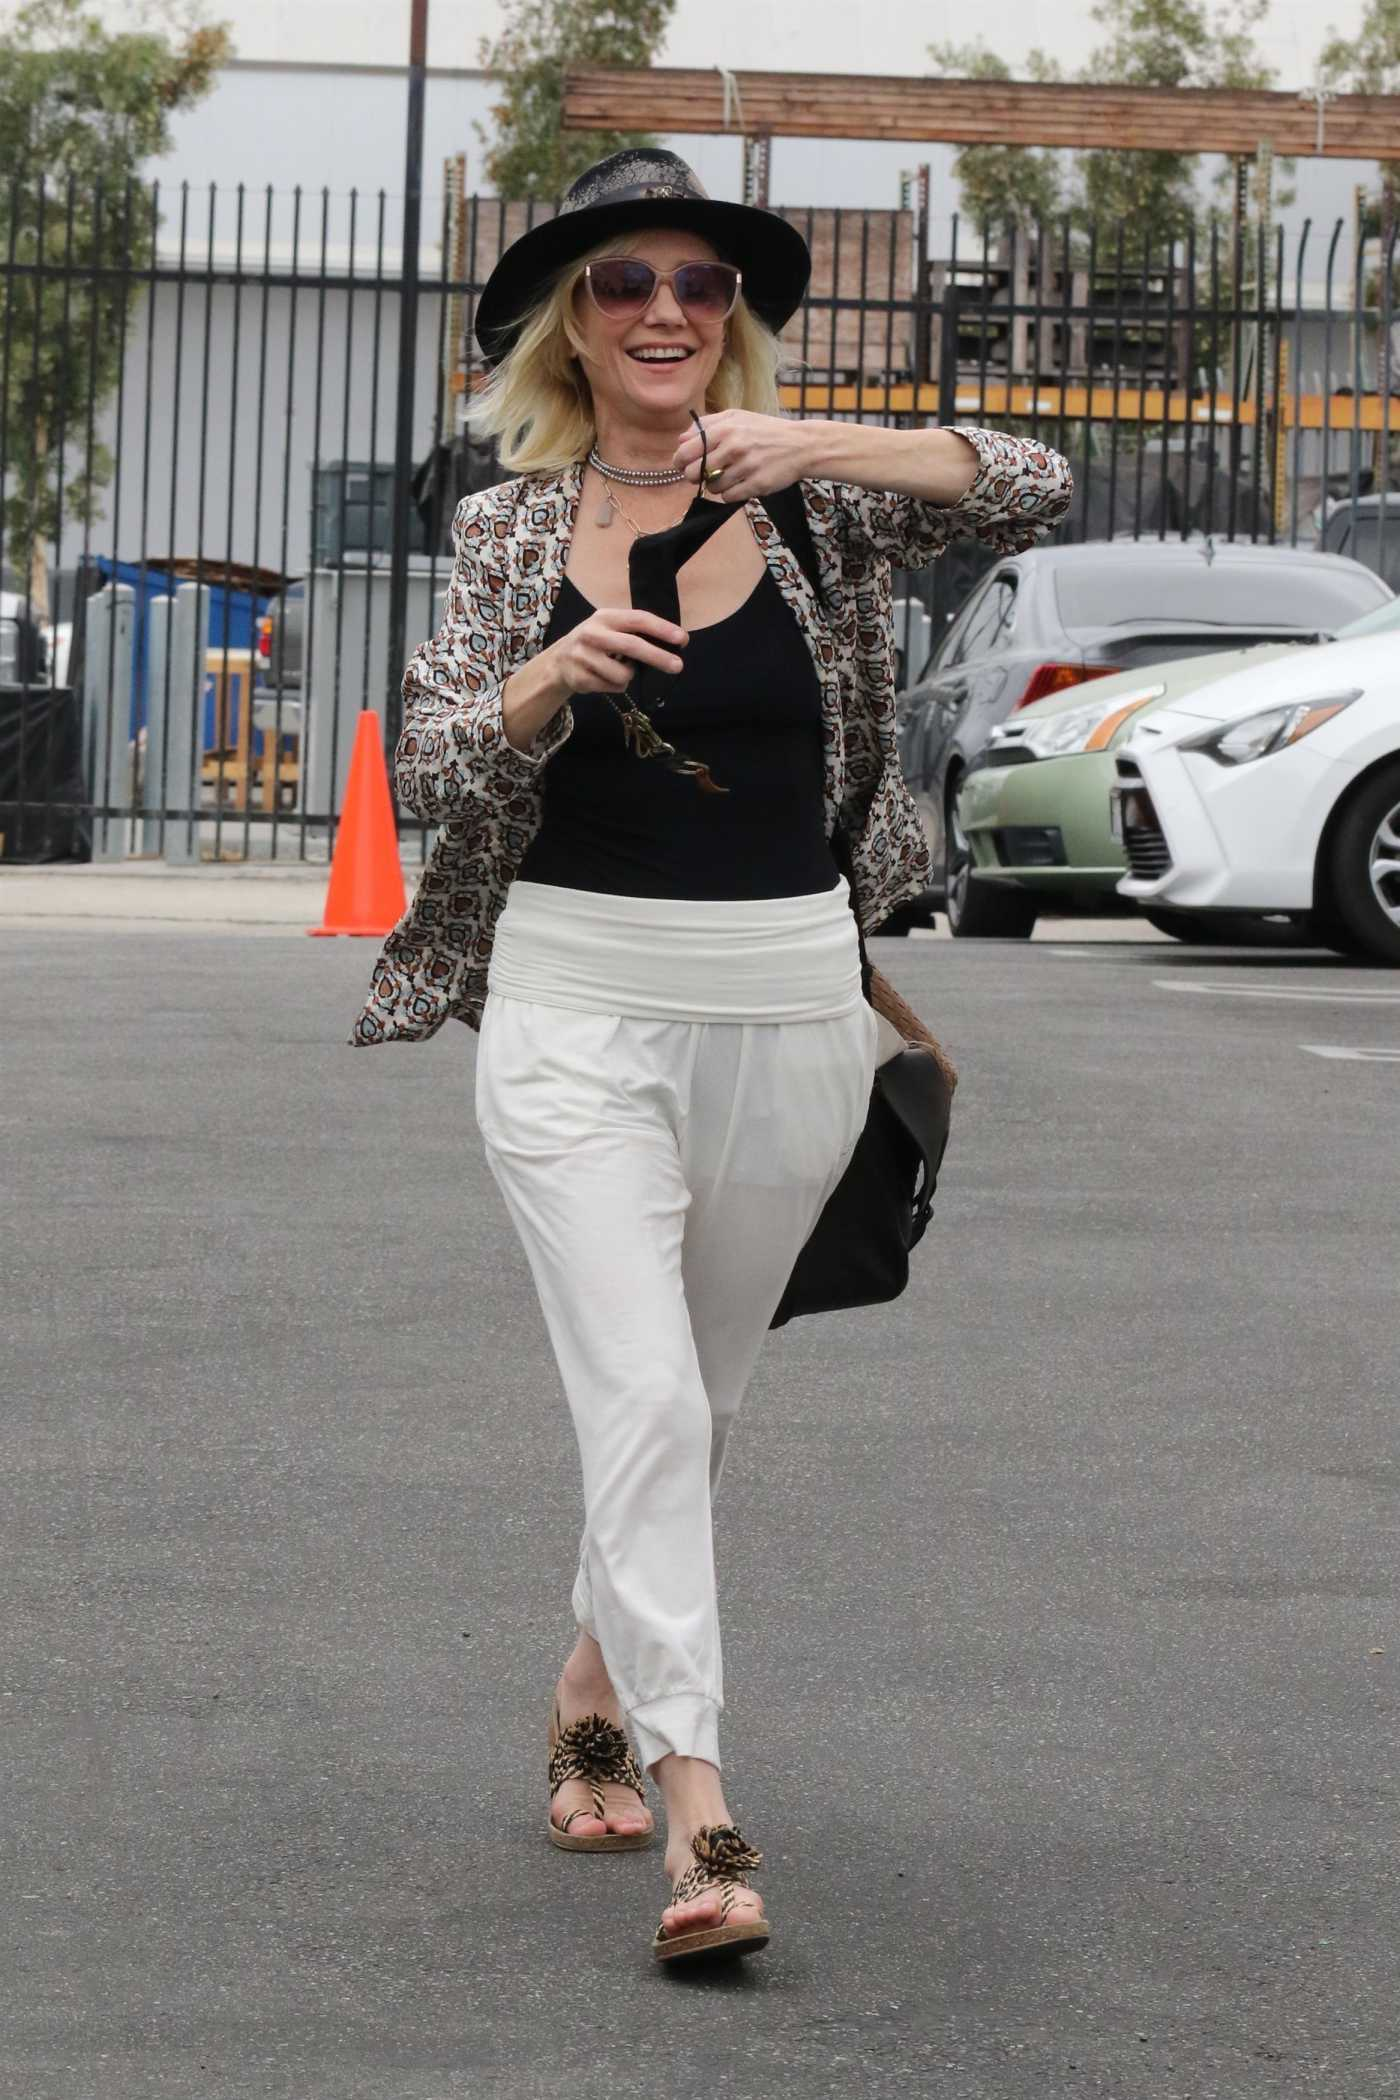 Anne Heche in a White Pants Arrives at the Dance Studio in Los Angeles 09/08/2020